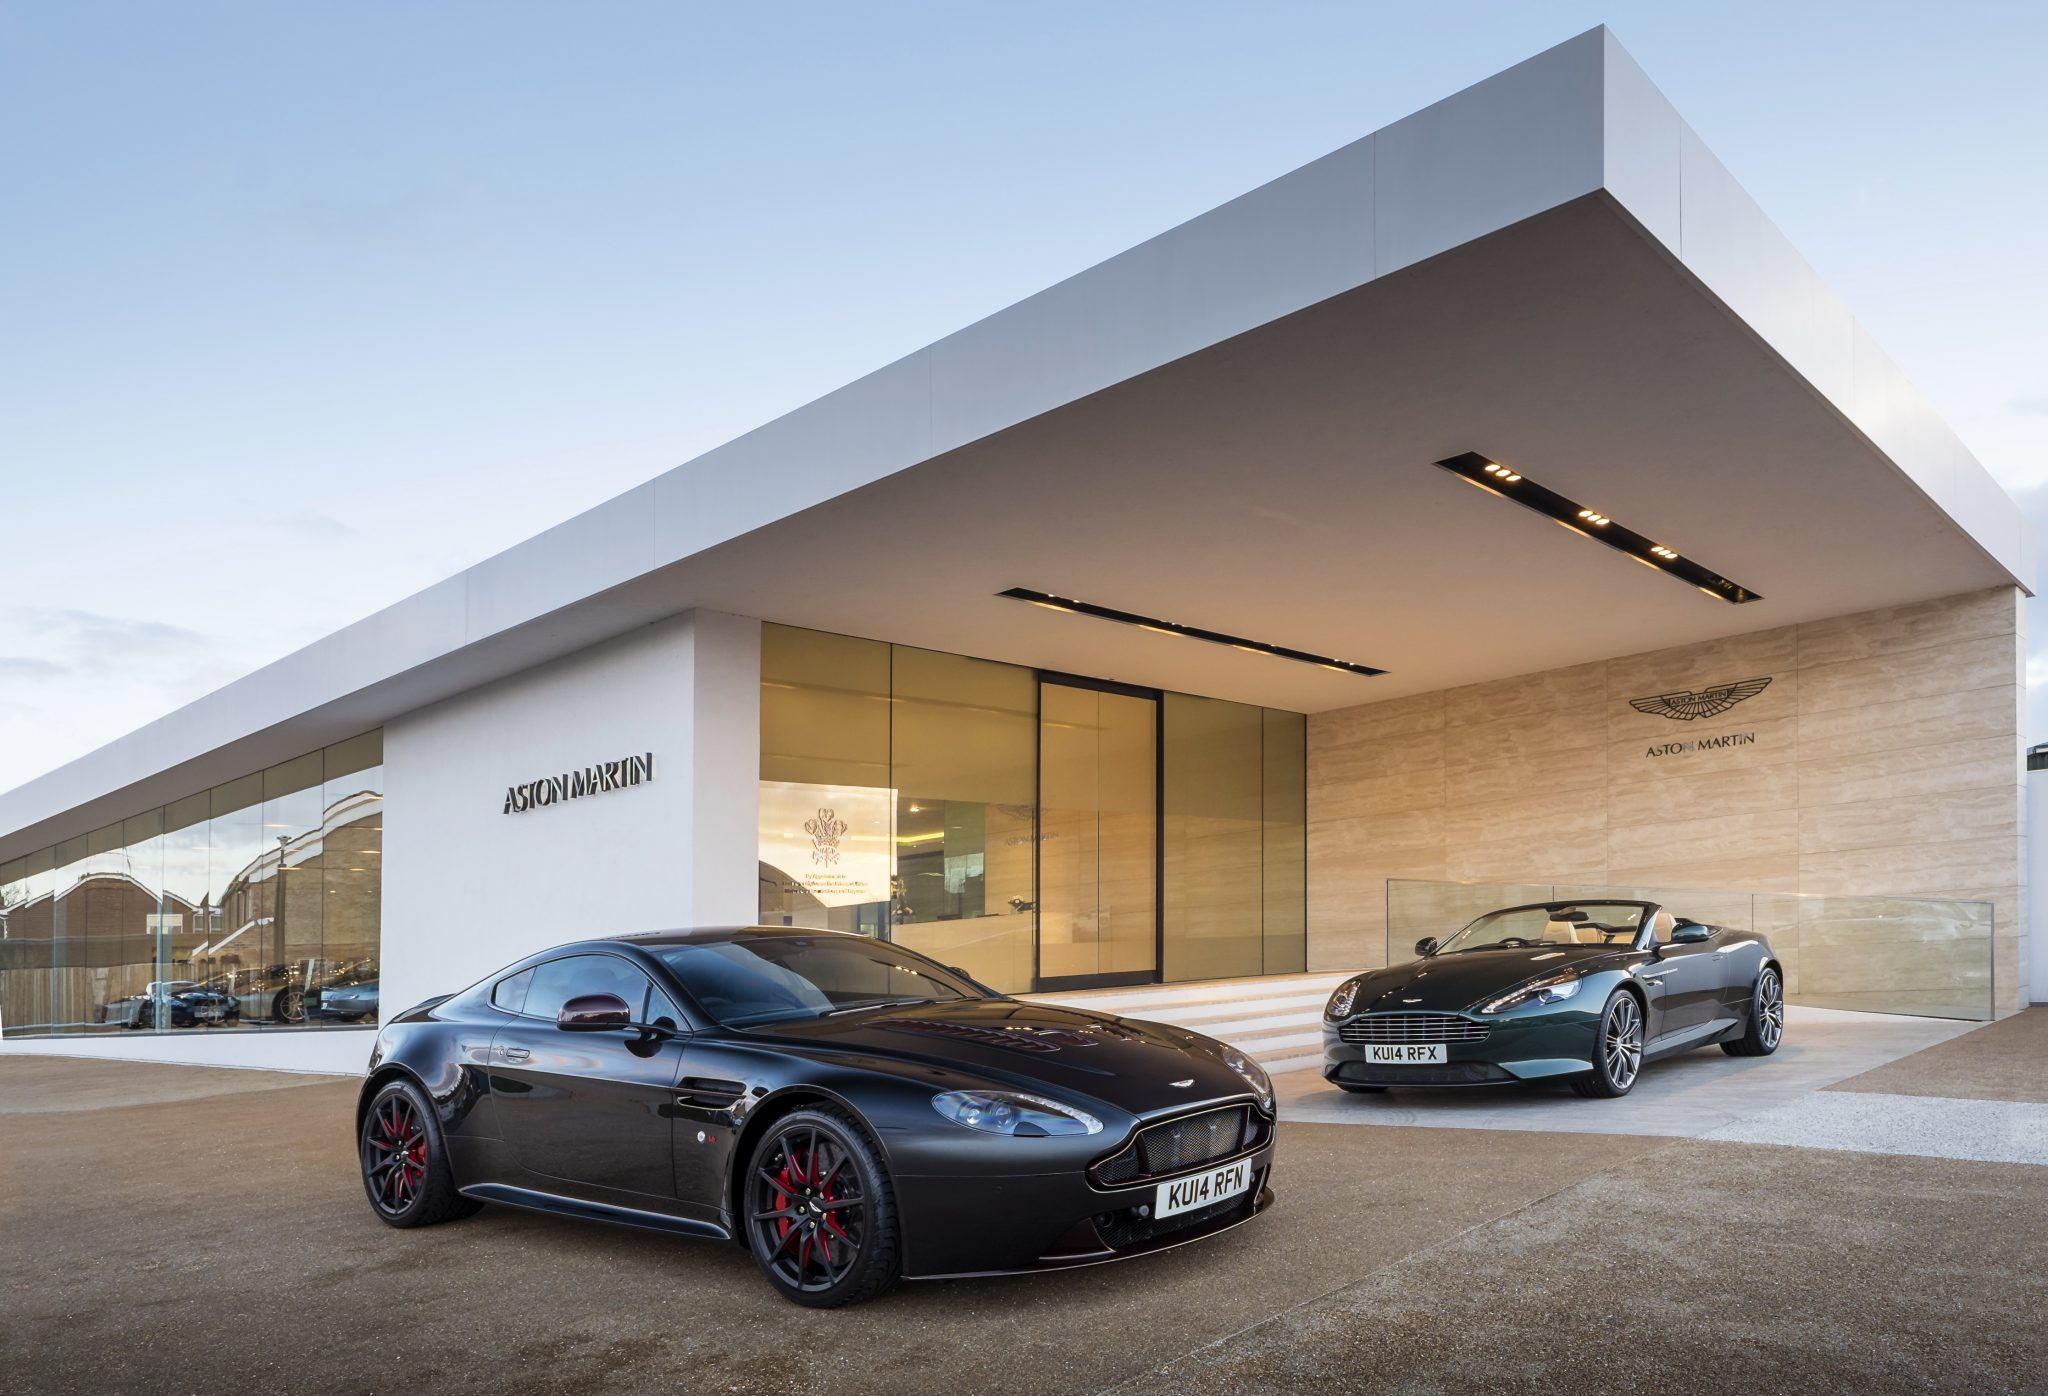 aston martin works celebrates a record performance in march - bhp